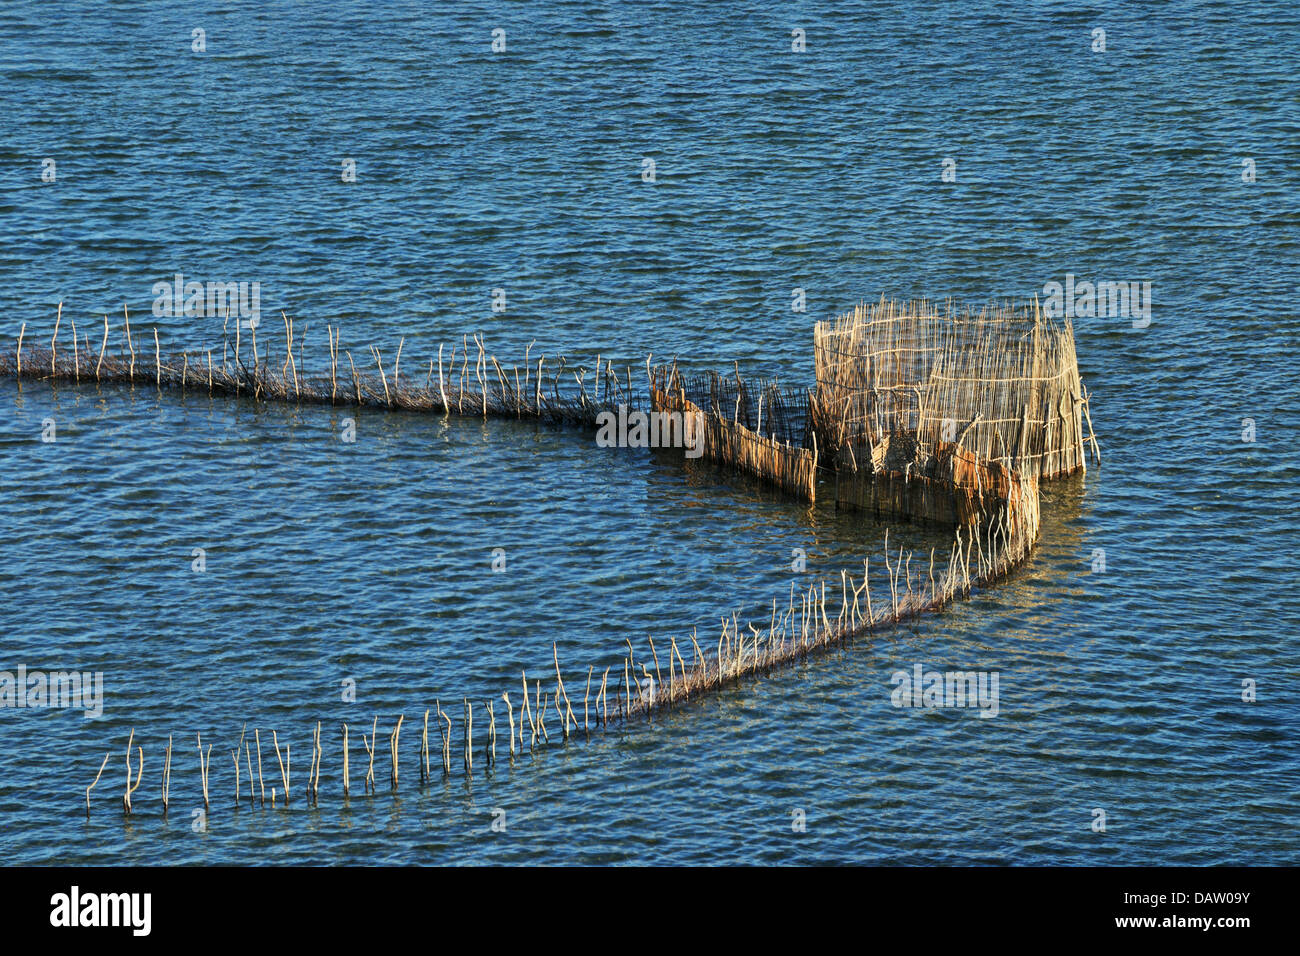 African fishtraps made of reeds at Kosi bay, Natal South Africa Stock Photo